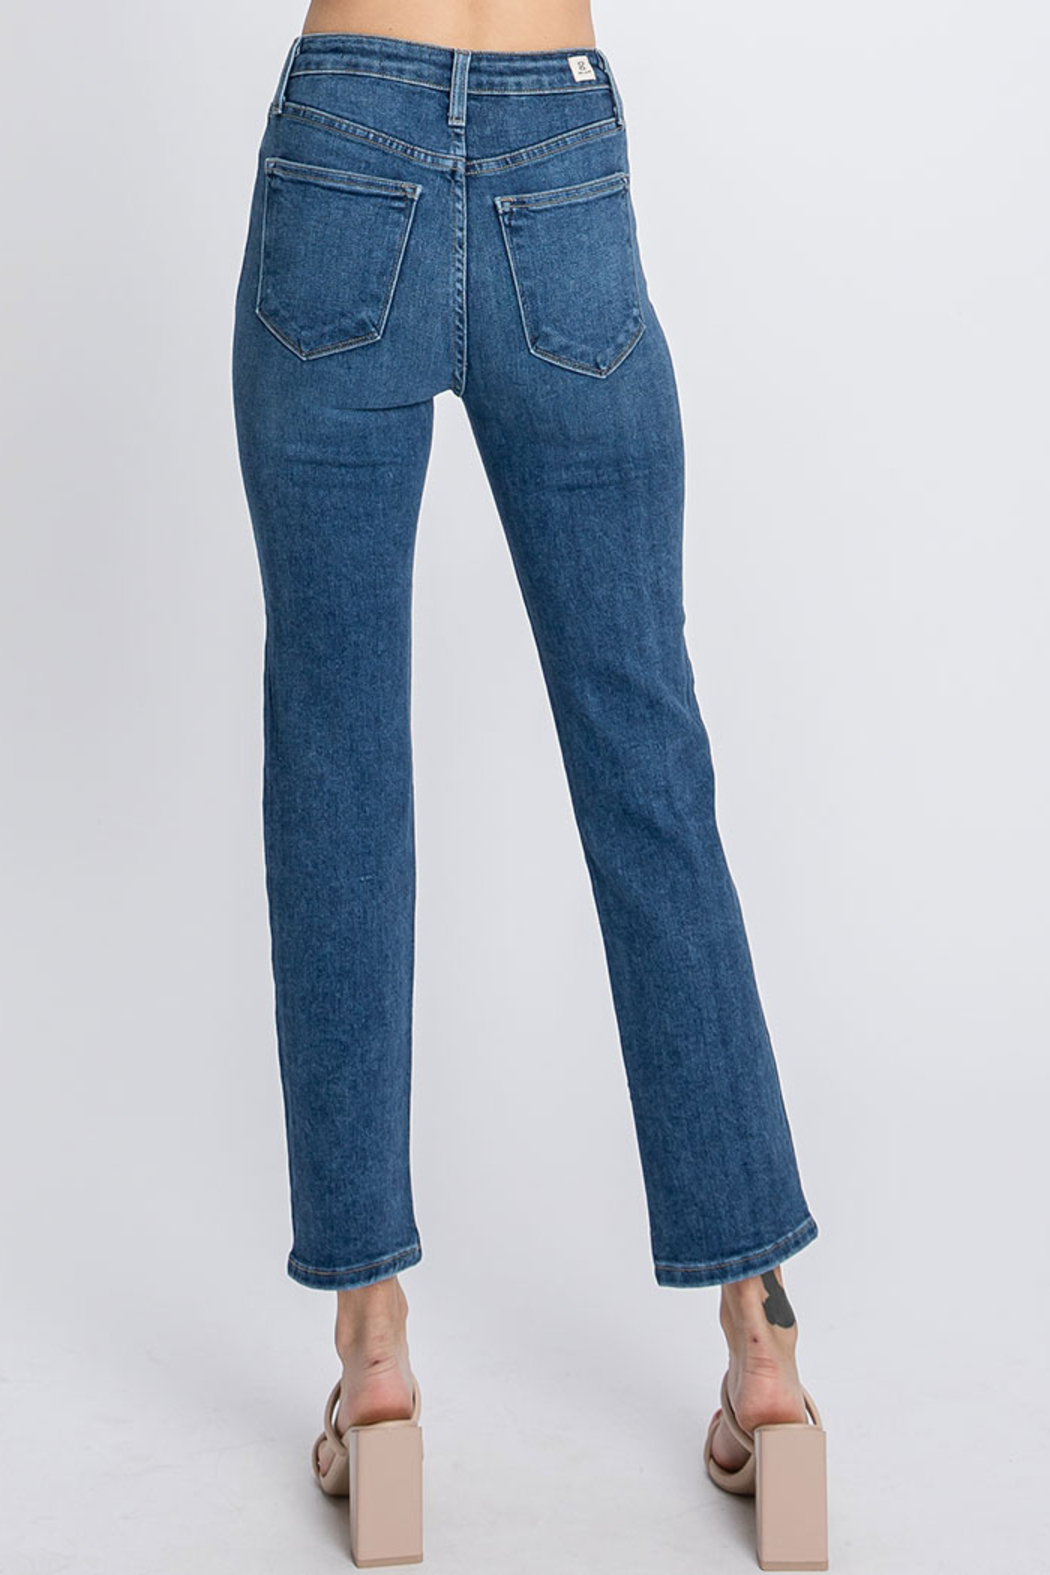 Letters to Juliet Siena High Rise Straight Leg Jean - Side Cropped Image